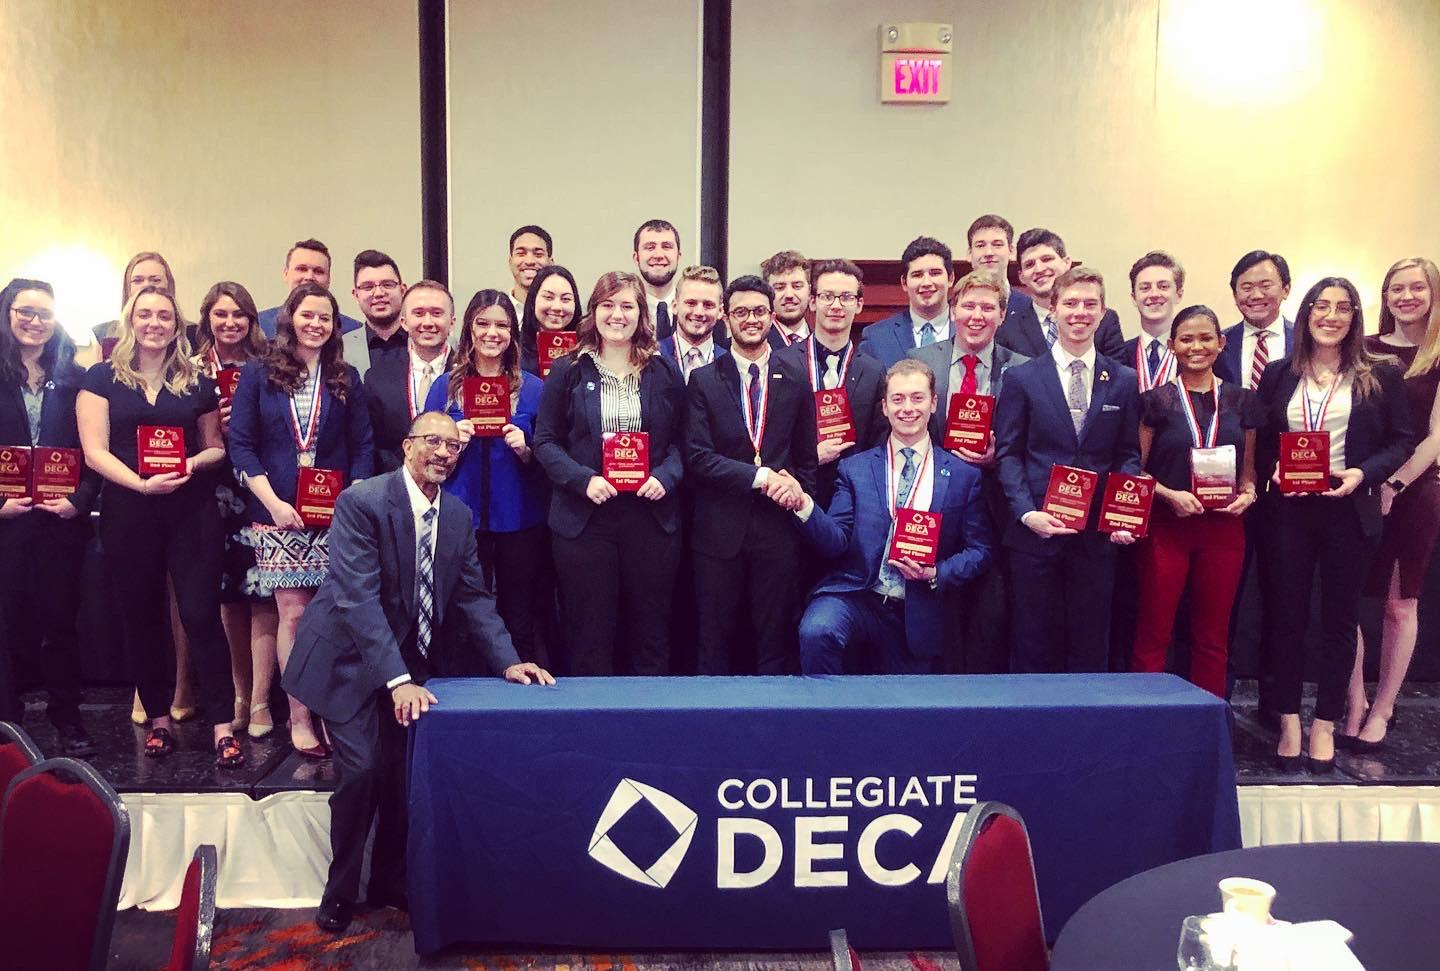 DECA team at February 2020 conference